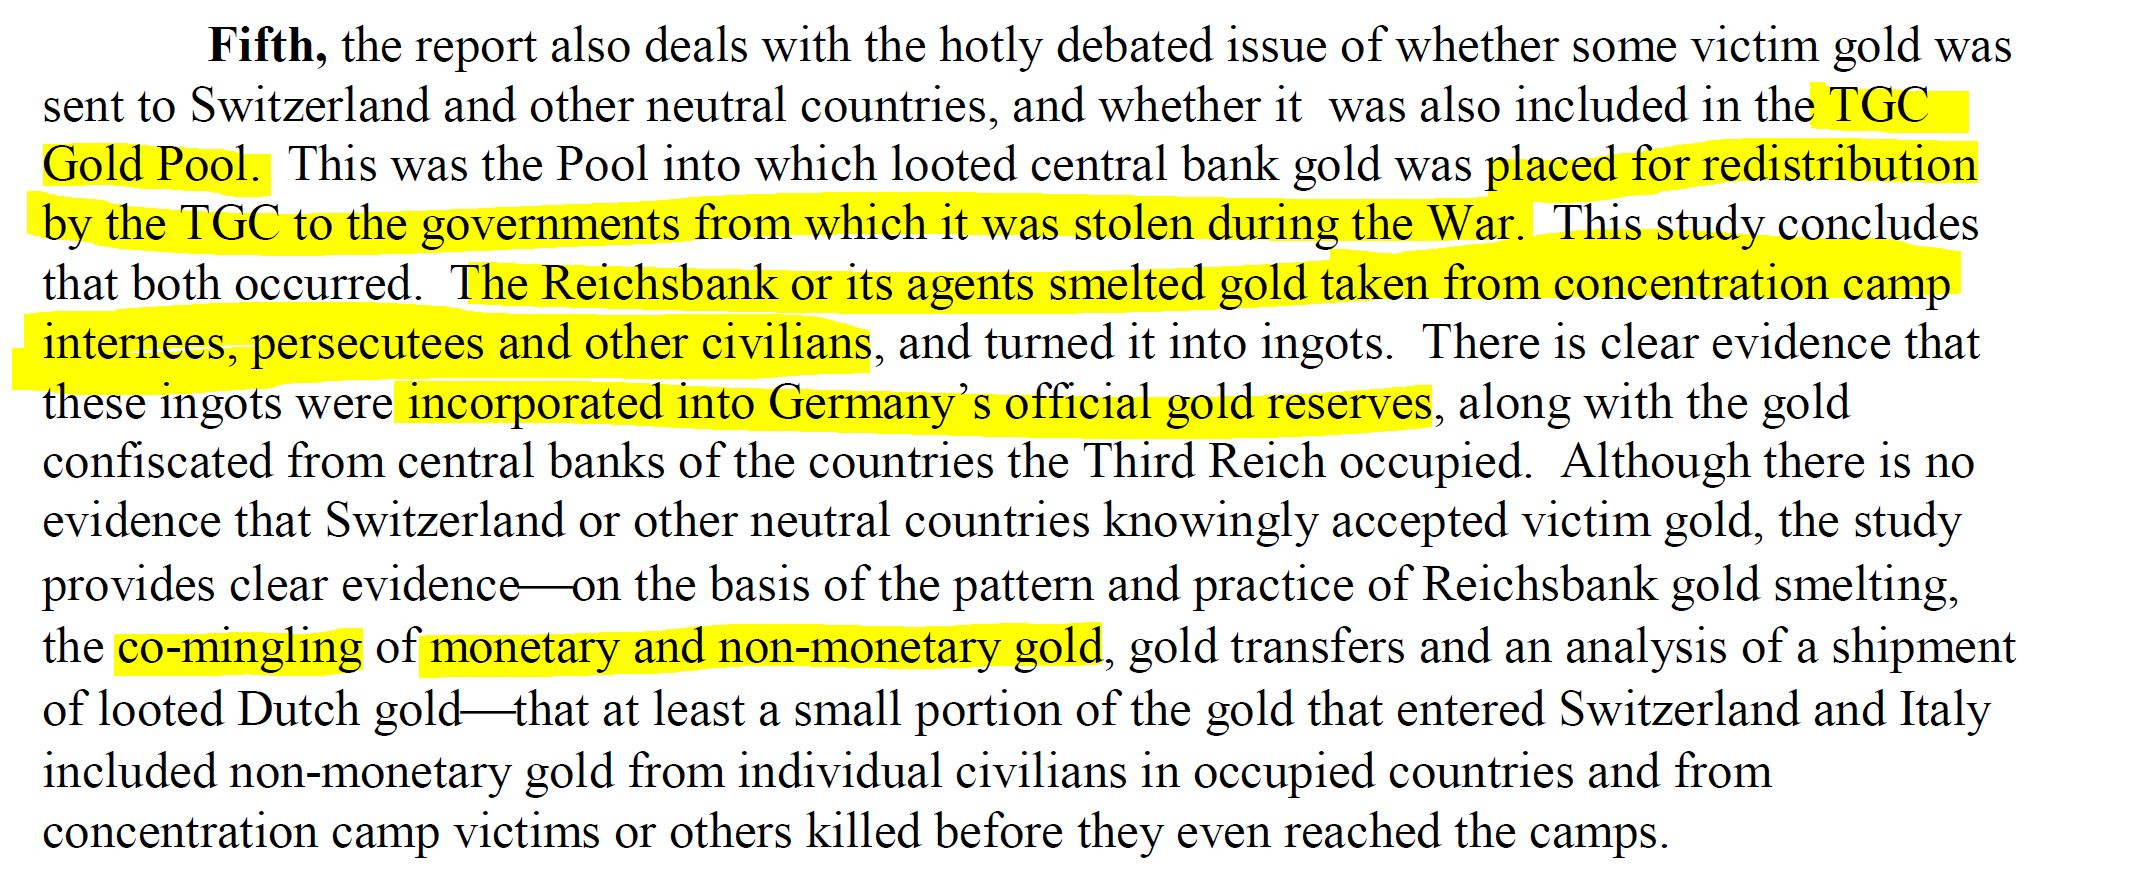 Stuart E. Eizenstat. (May 01, 1997). Nazi Swiss Gold Claims, Doc. No. 05, U.S. and Allied Efforts To Recover and Restore Gold and Other Assets Stolen or Hidden by Germany During World War II - Preliminary Study. U.S. State Department.